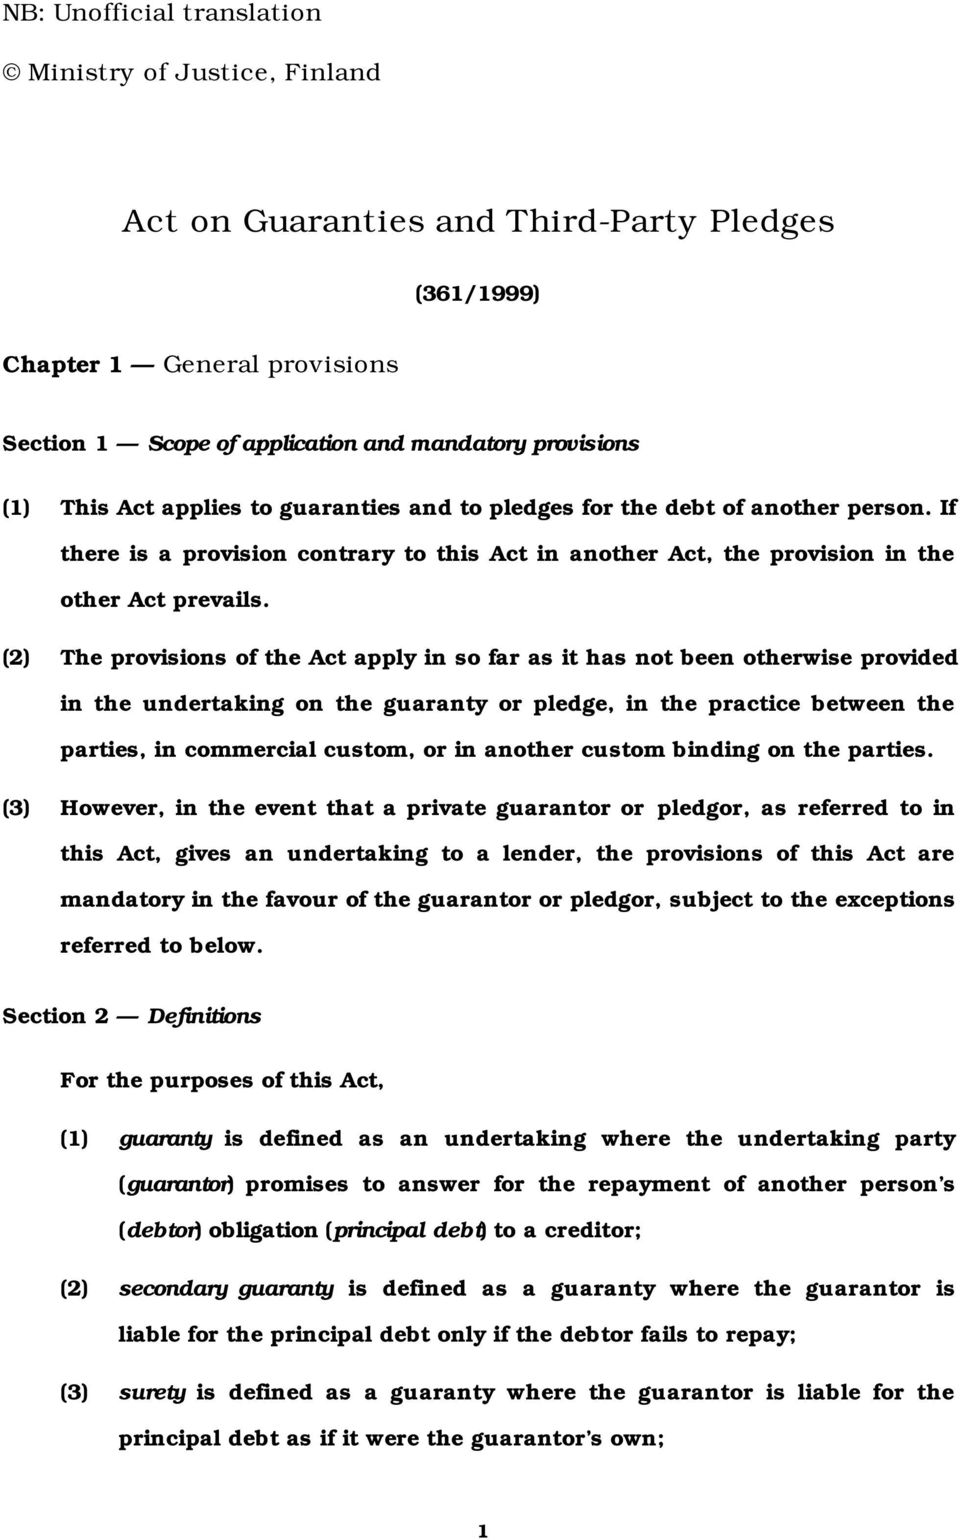 (2) The provisions of the Act apply in so far as it has not been otherwise provided in the undertaking on the guaranty or pledge, in the practice between the parties, in commercial custom, or in